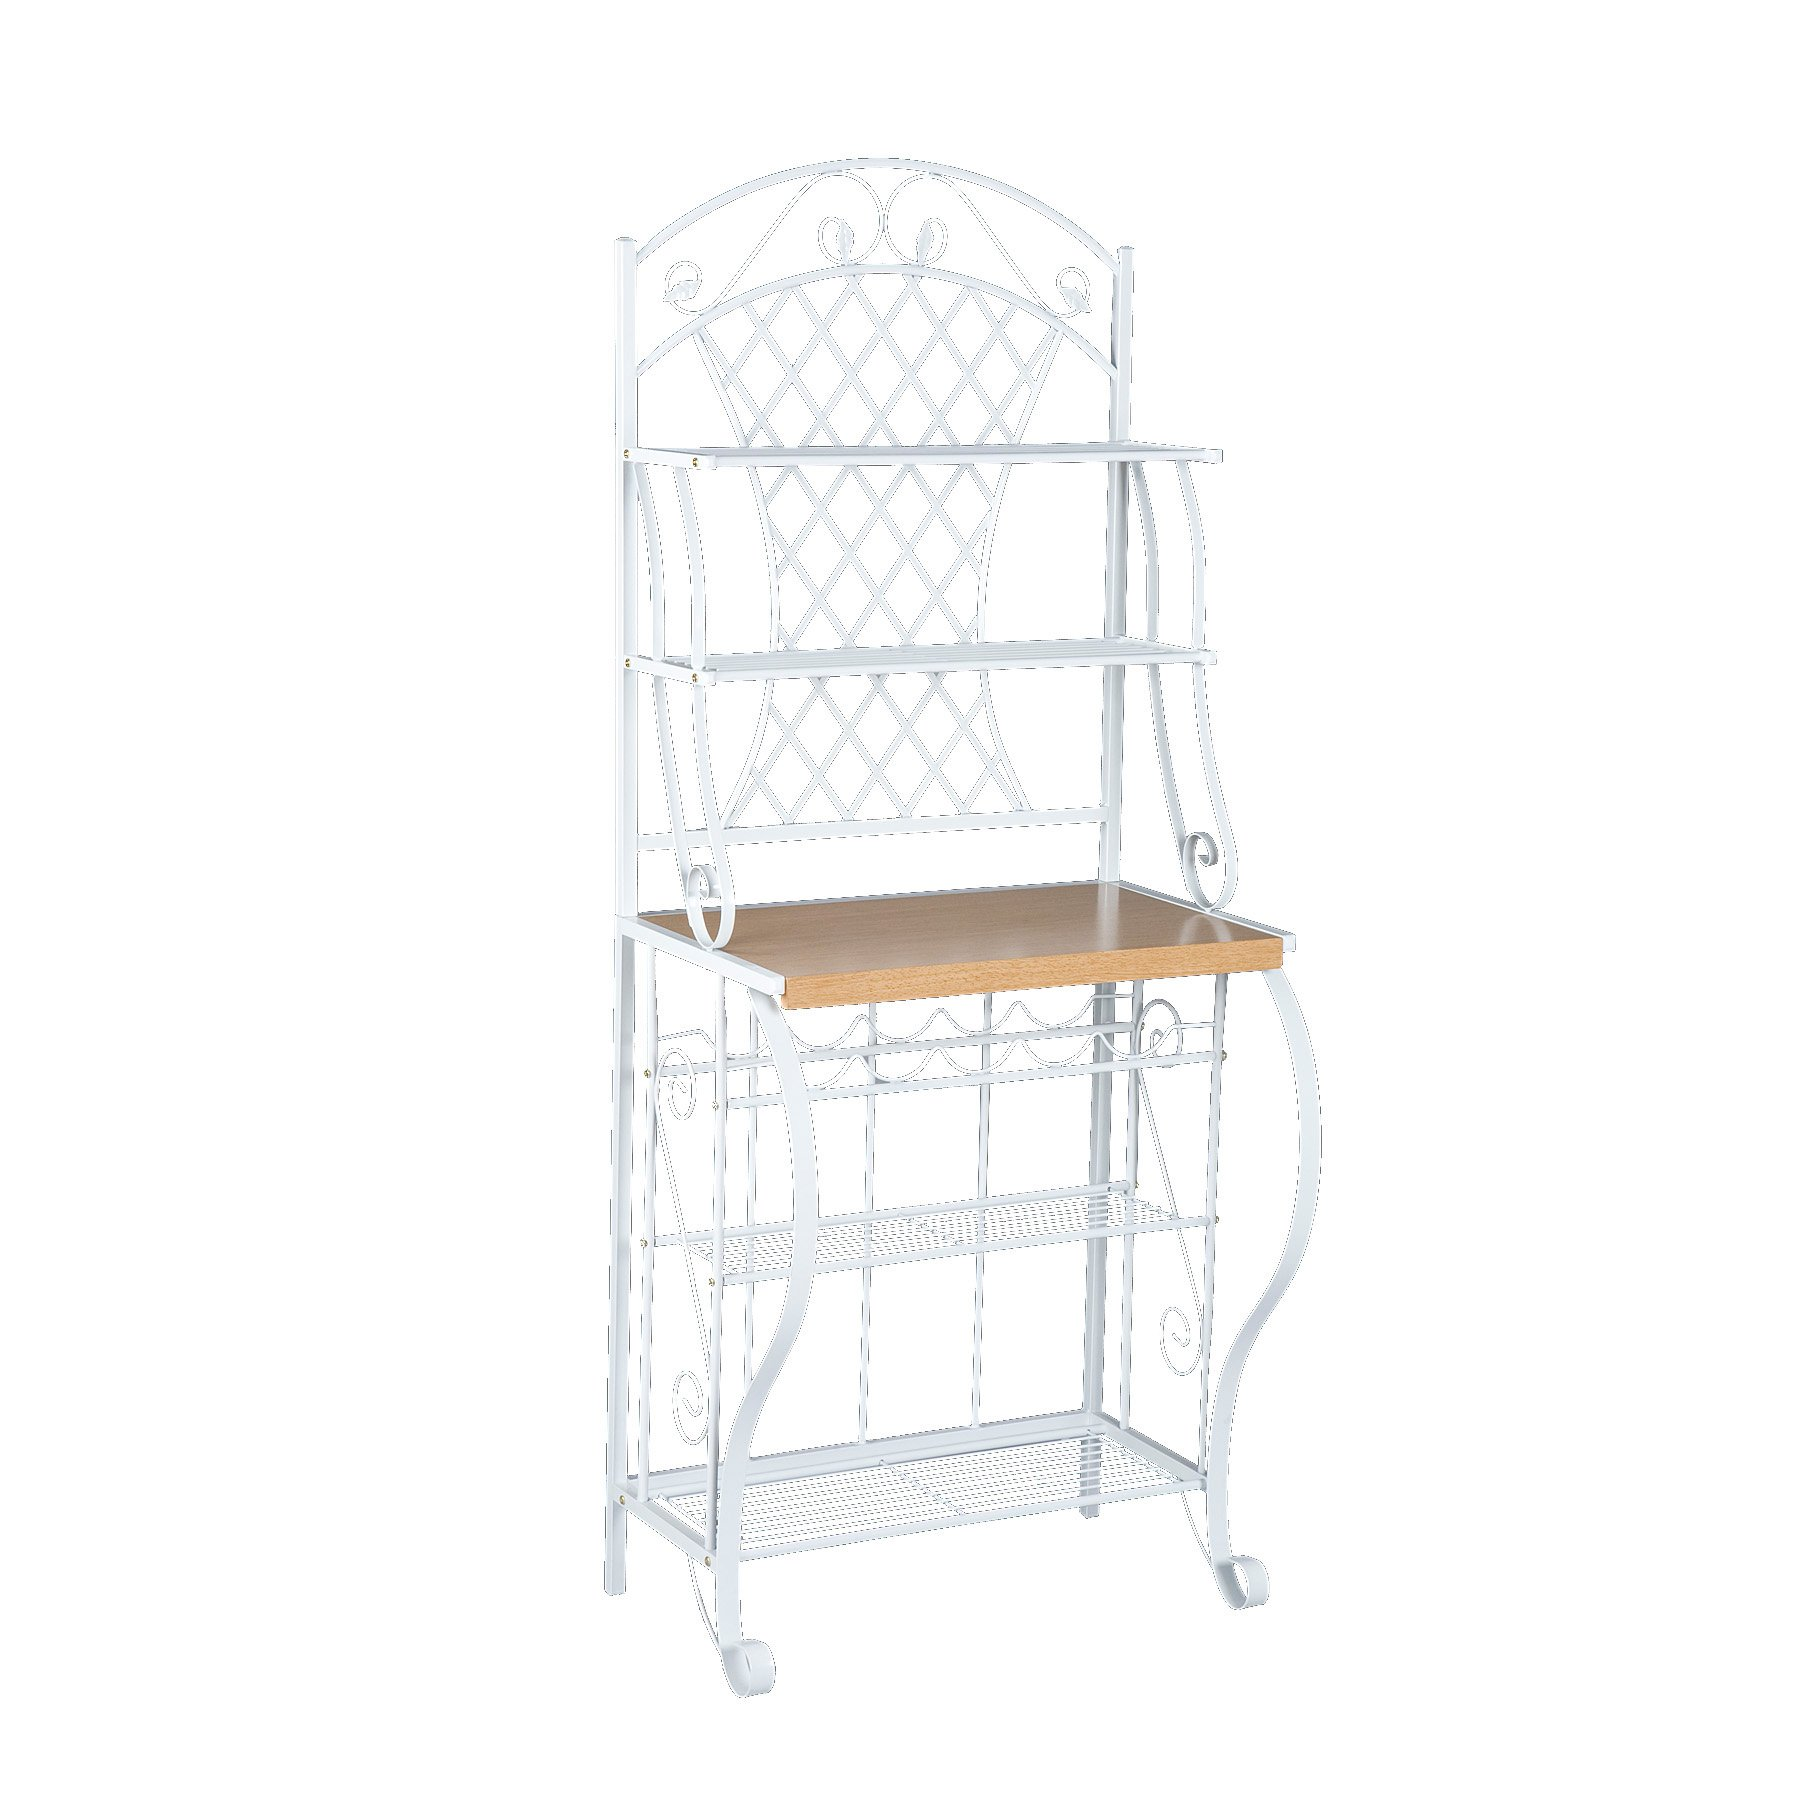 Southern Enterprises Trellis Bakers Rack with Scroll Work, White with Oak Finish by SEI (Image #1)